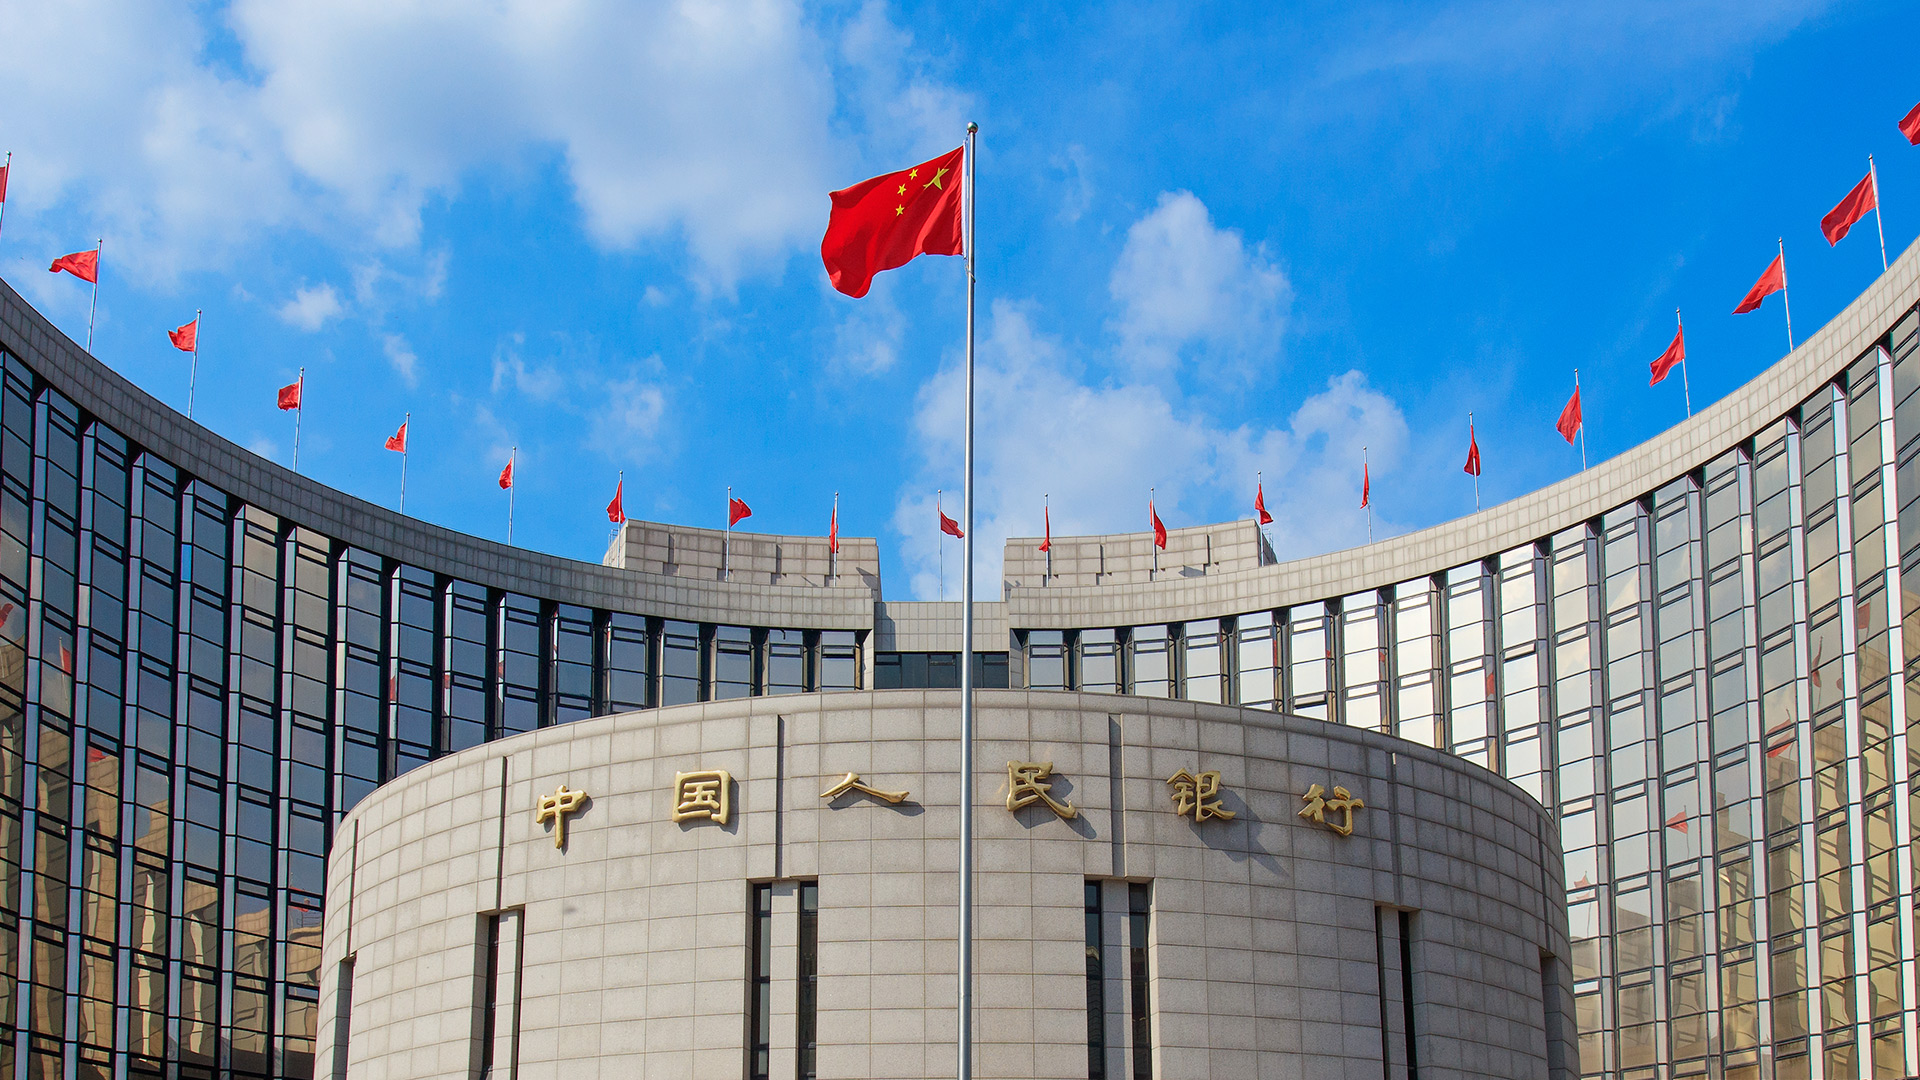 Chinese city of Suzhou to give away $3 million in digital yuan via lottery